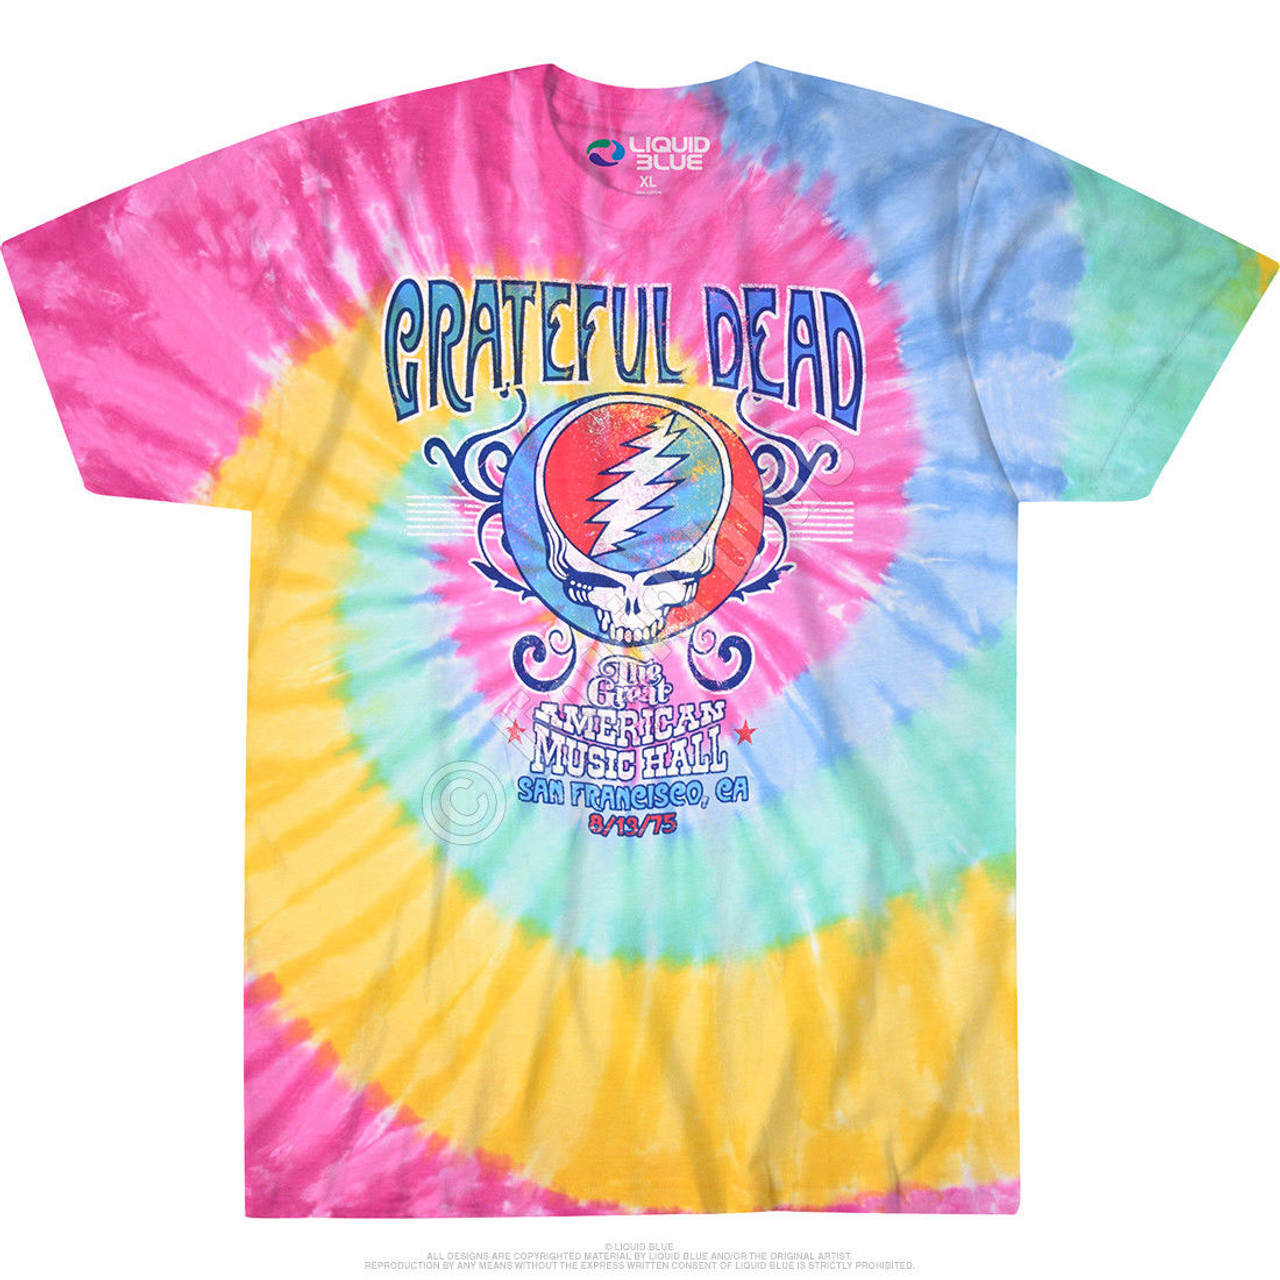 30521aae0942 The Grateful Dead American Music Hall Spiral Tie Dye Psychedelic Tee Shirt  11333 - Fearless Apparel